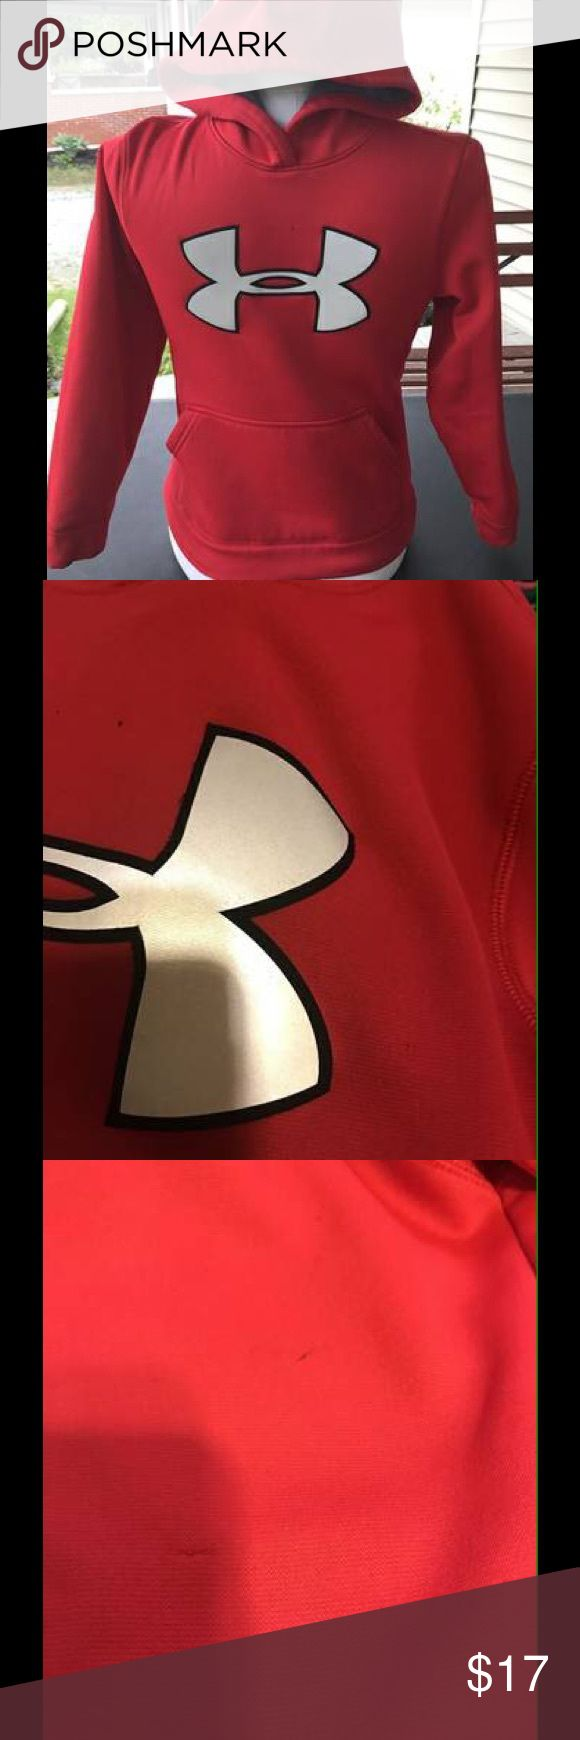 Boys Under Armour Sweatshirt It is a size youth small, color is red, in great worn condition, has some small snags on the front and a tiny stain, a couple of snags on the back, and two small stains, sale is final, I do not accept returns! Under Armour Shirts & Tops Sweatshirts & Hoodies